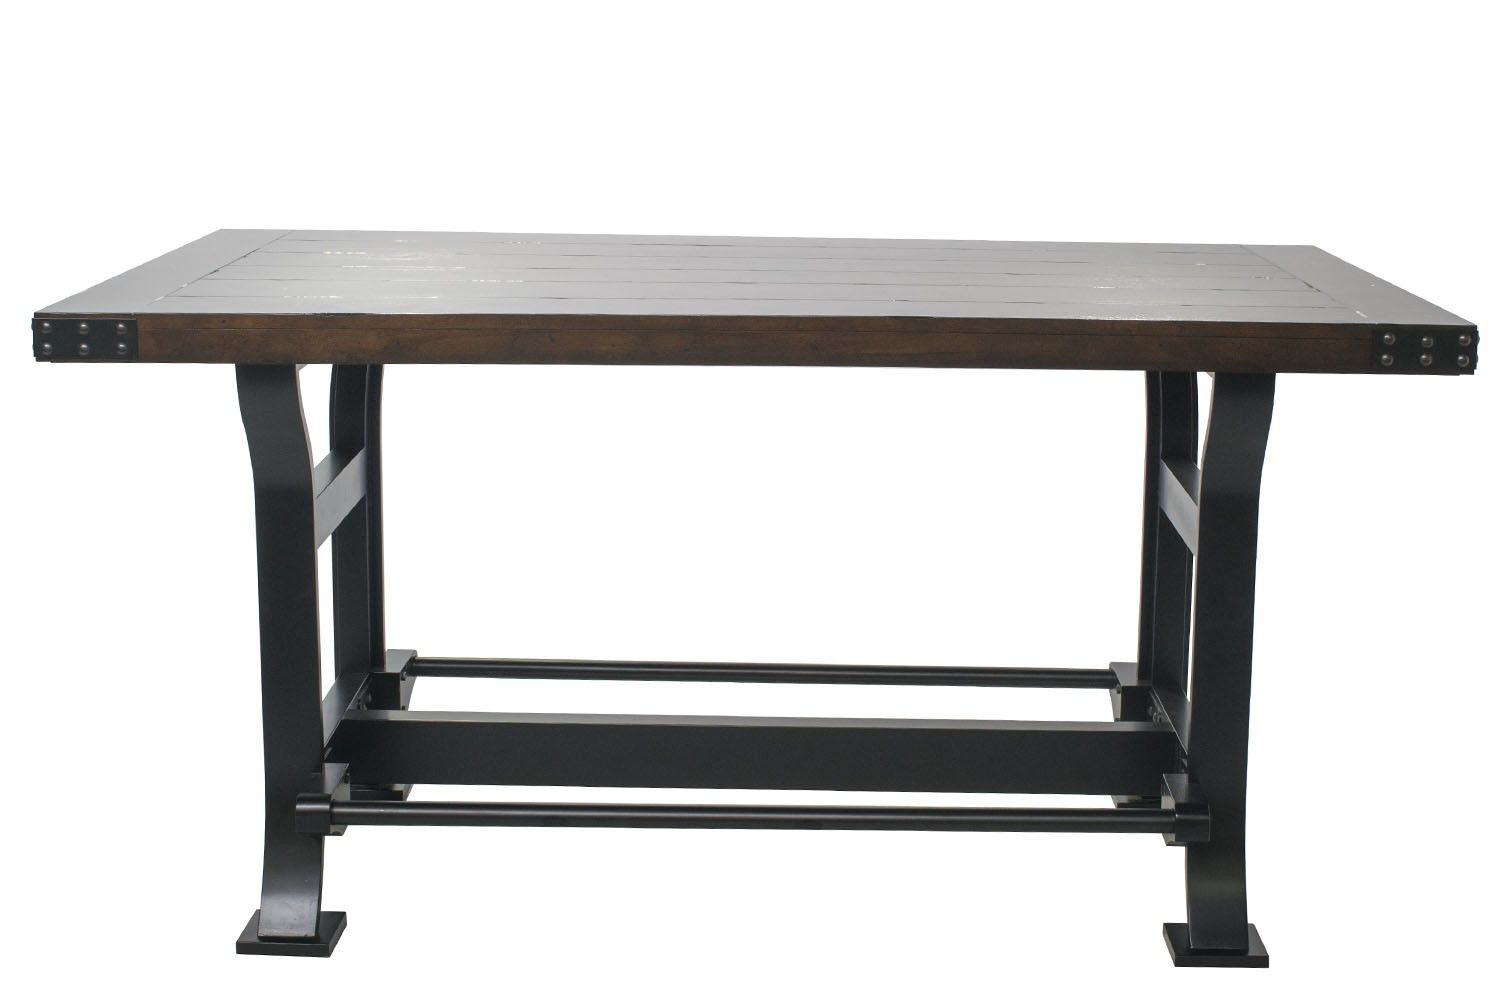 Mor Furniture For Less The Iron Works Counter Height Table Mor Furniture For Less Furniture